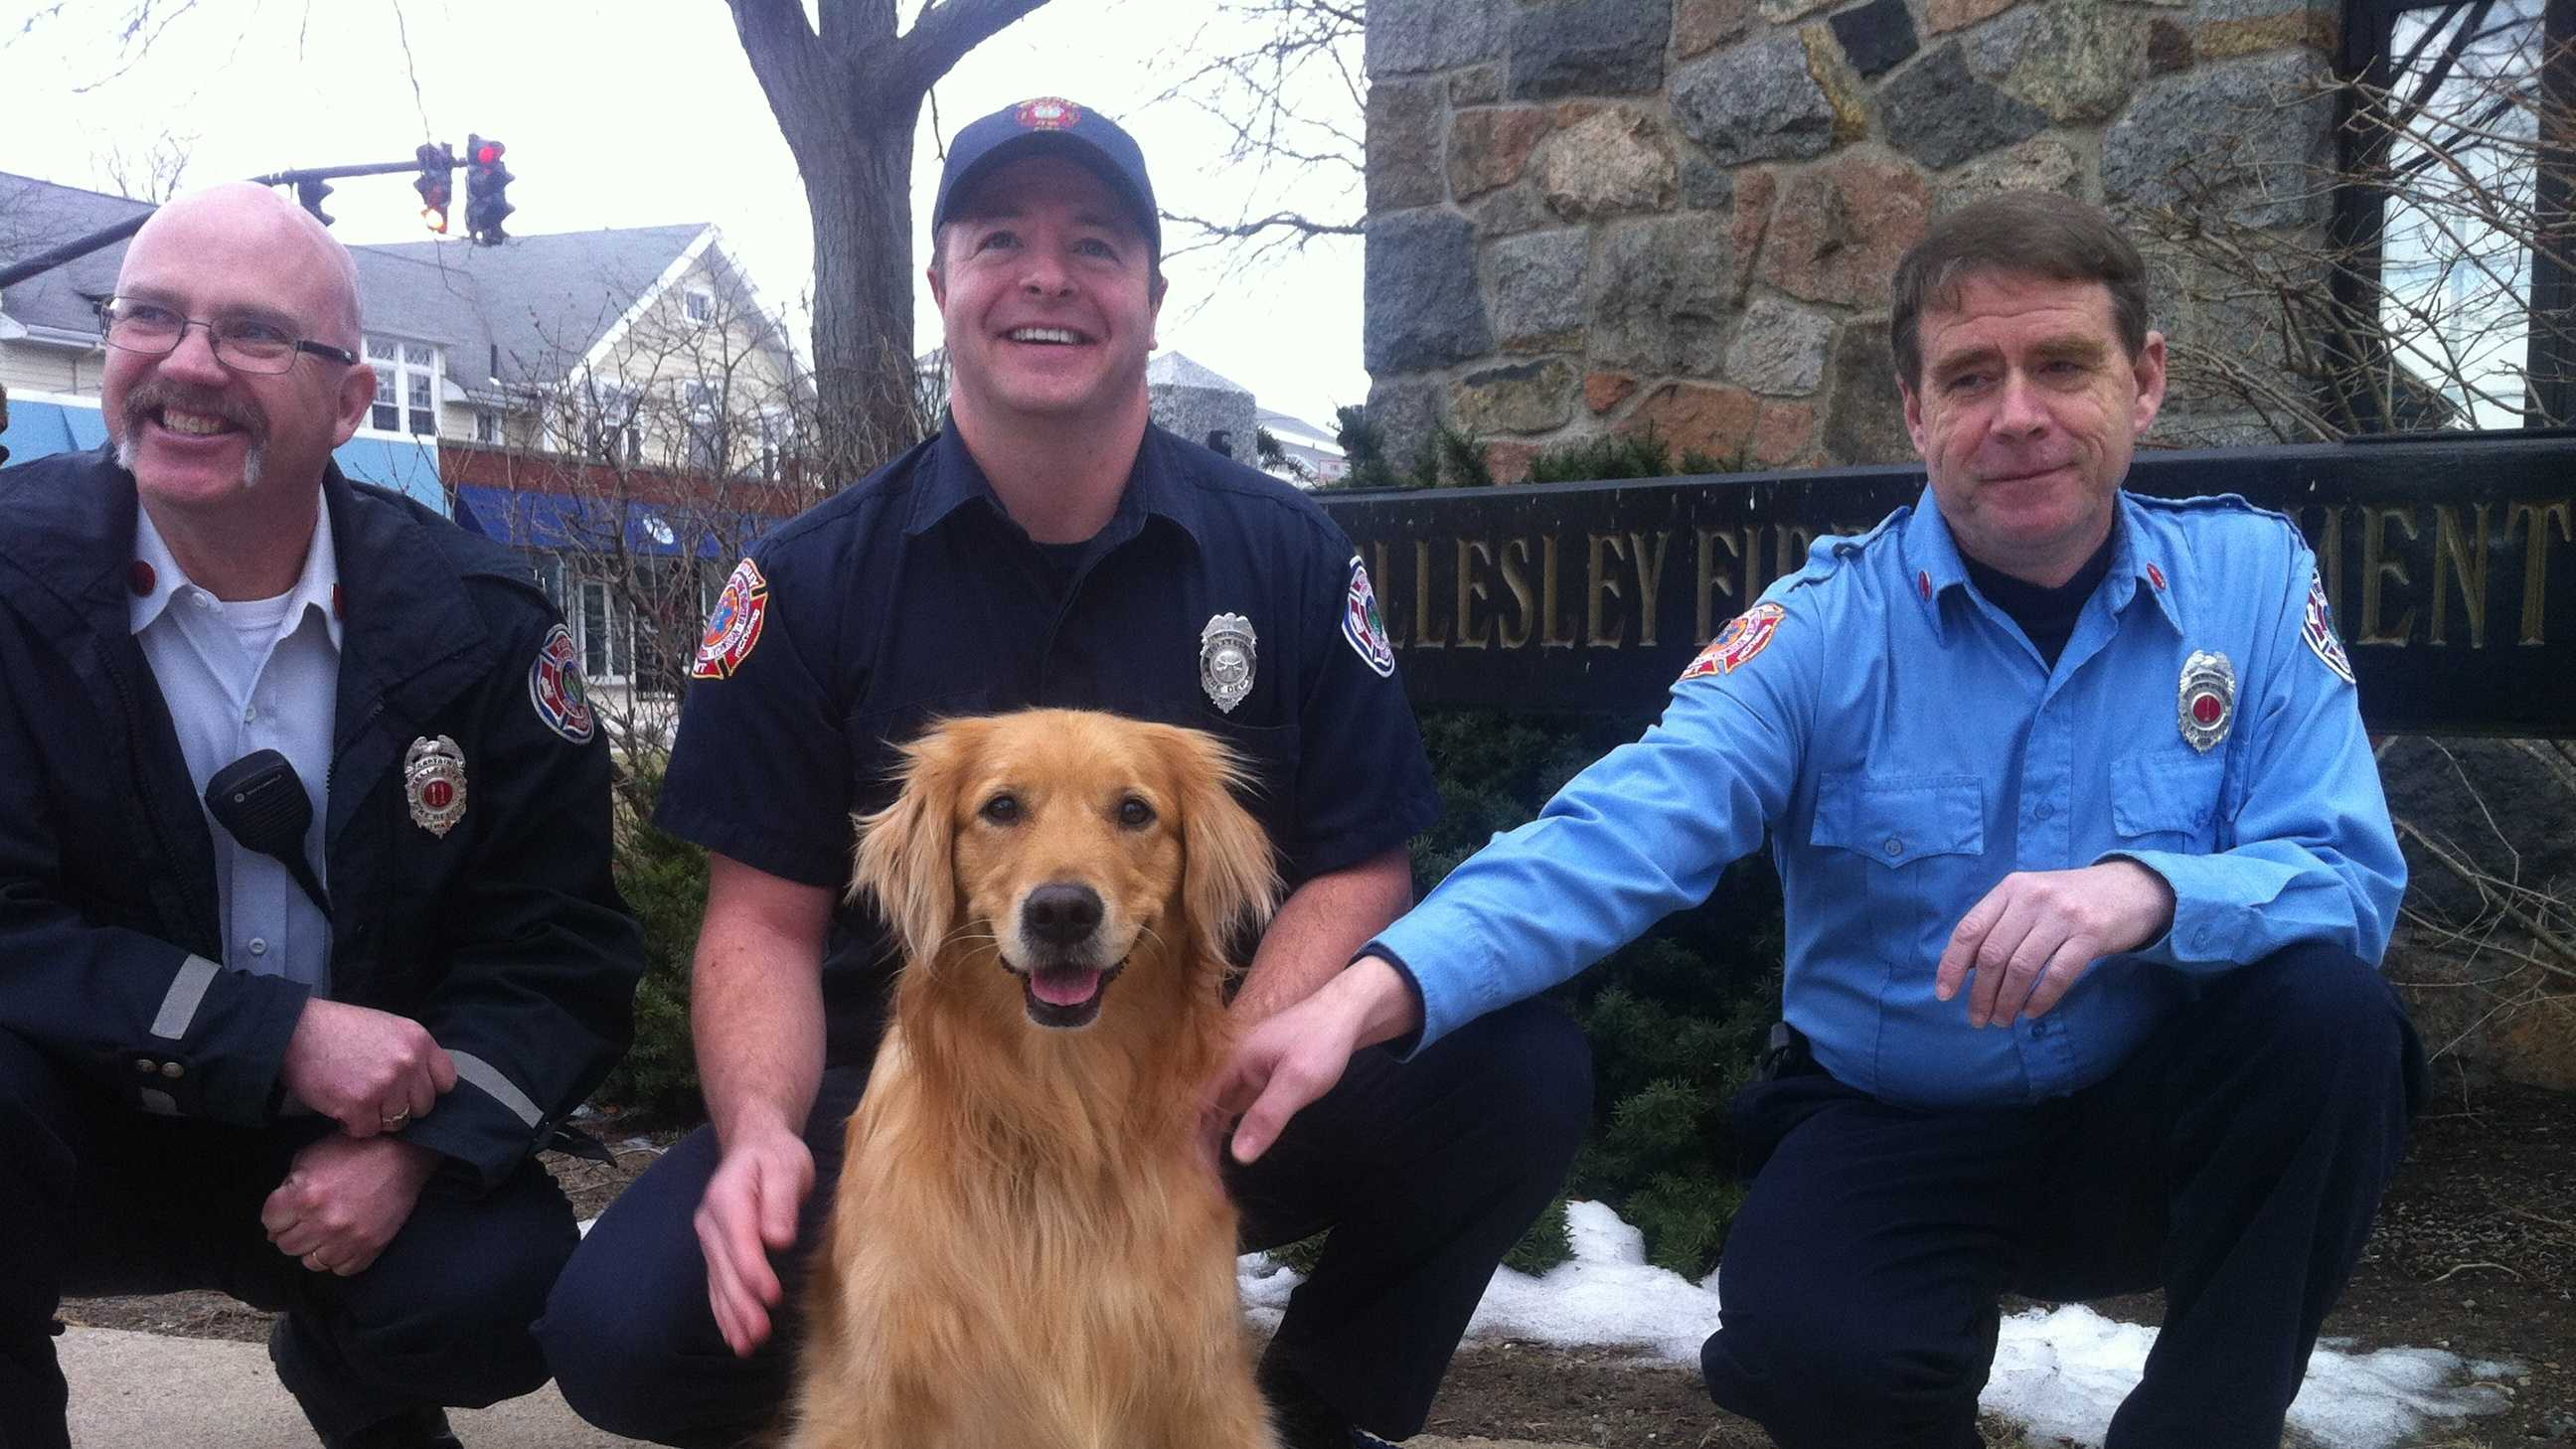 Crosby with Wellesley Fire Capt. Jim Dennehy (L), firefighter Dave Papazian and Lt. Paul Delaney (R).